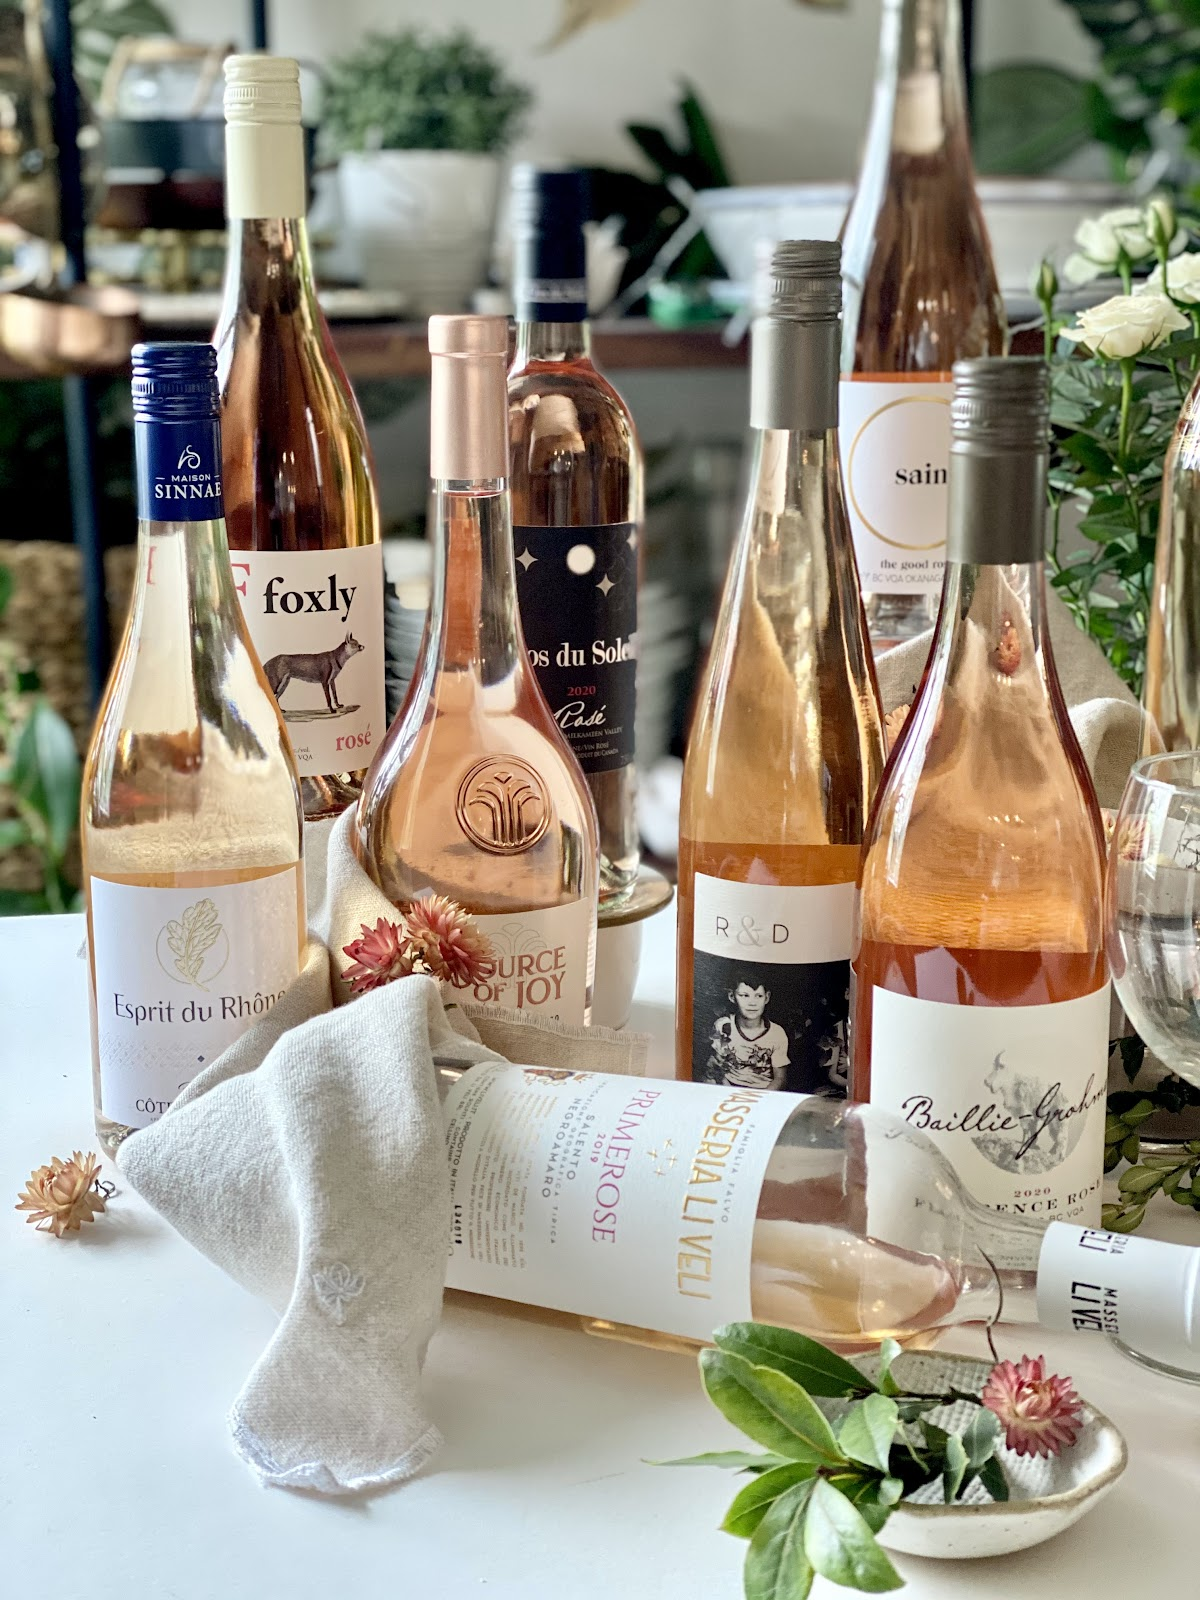 alison kent the home kitchen 5 week series blog on rose wine with barb wild of the good wine gal rose wines selection featuring a variety of rose wines